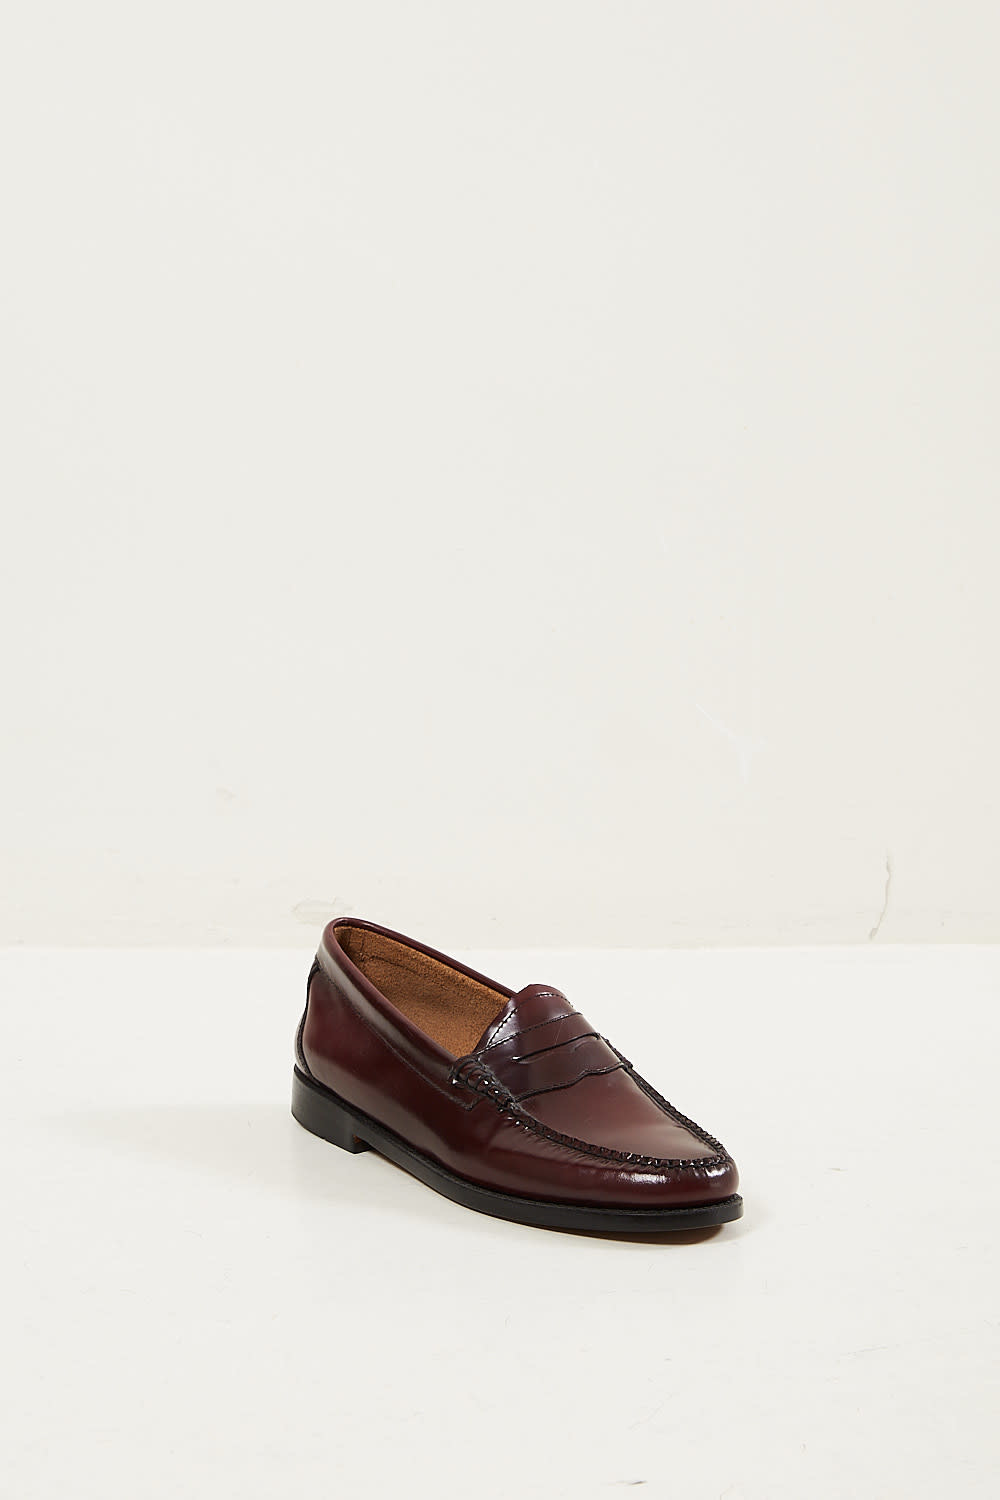 G.H.Bass - Weejun original penny loafer